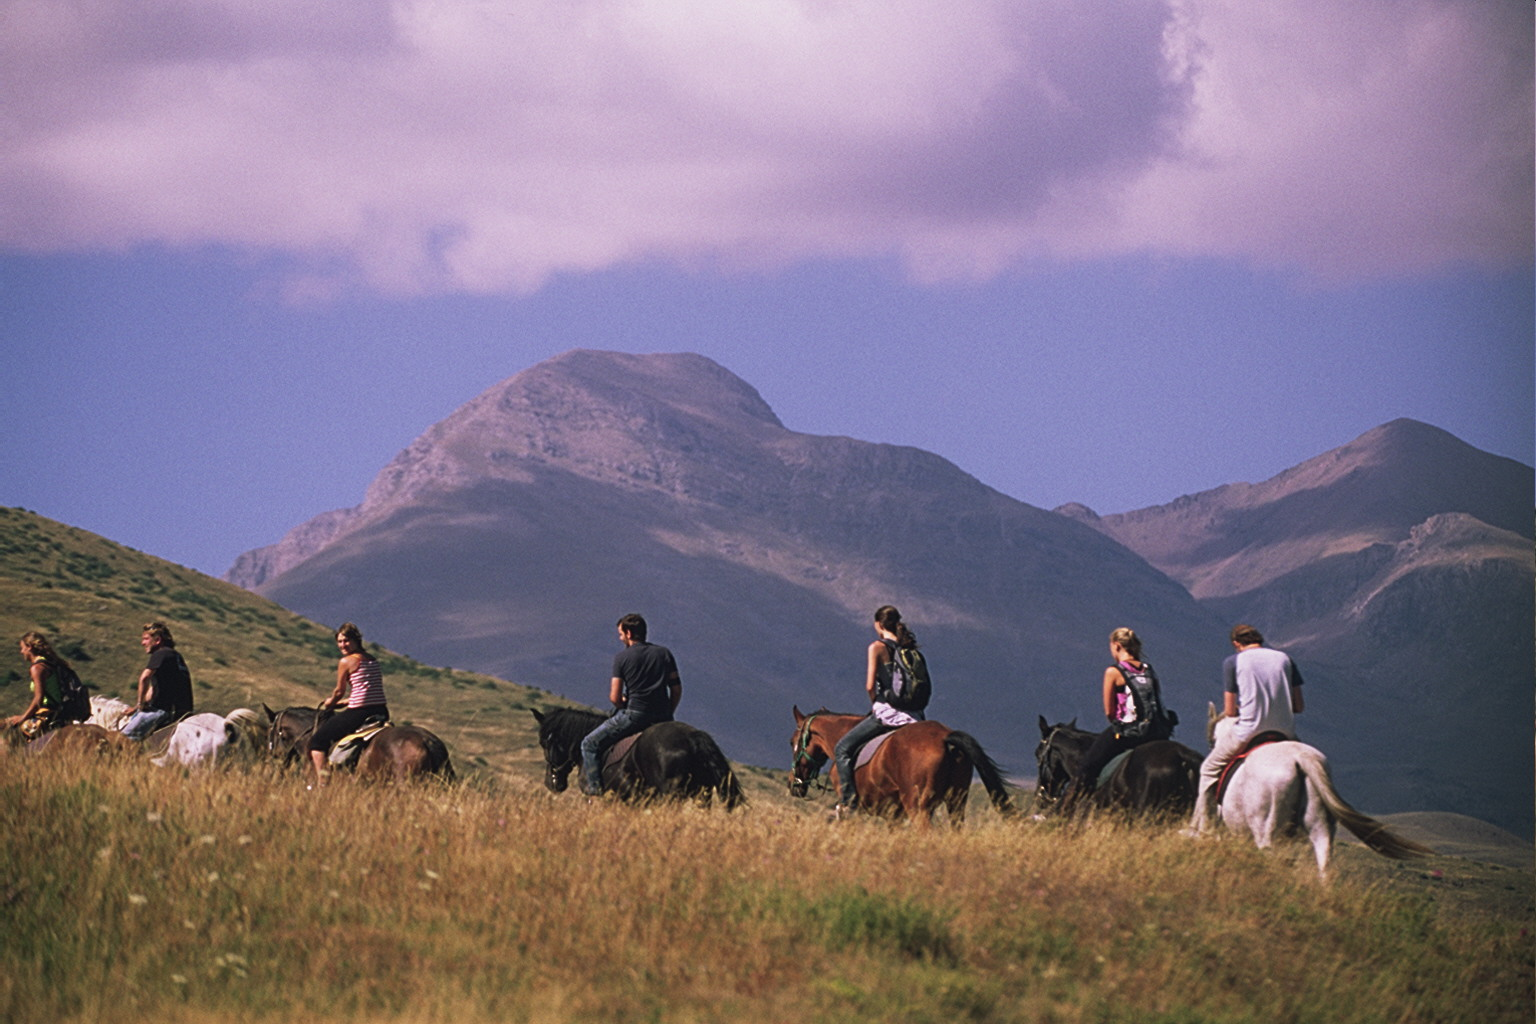 Go horse-riding in the mountains